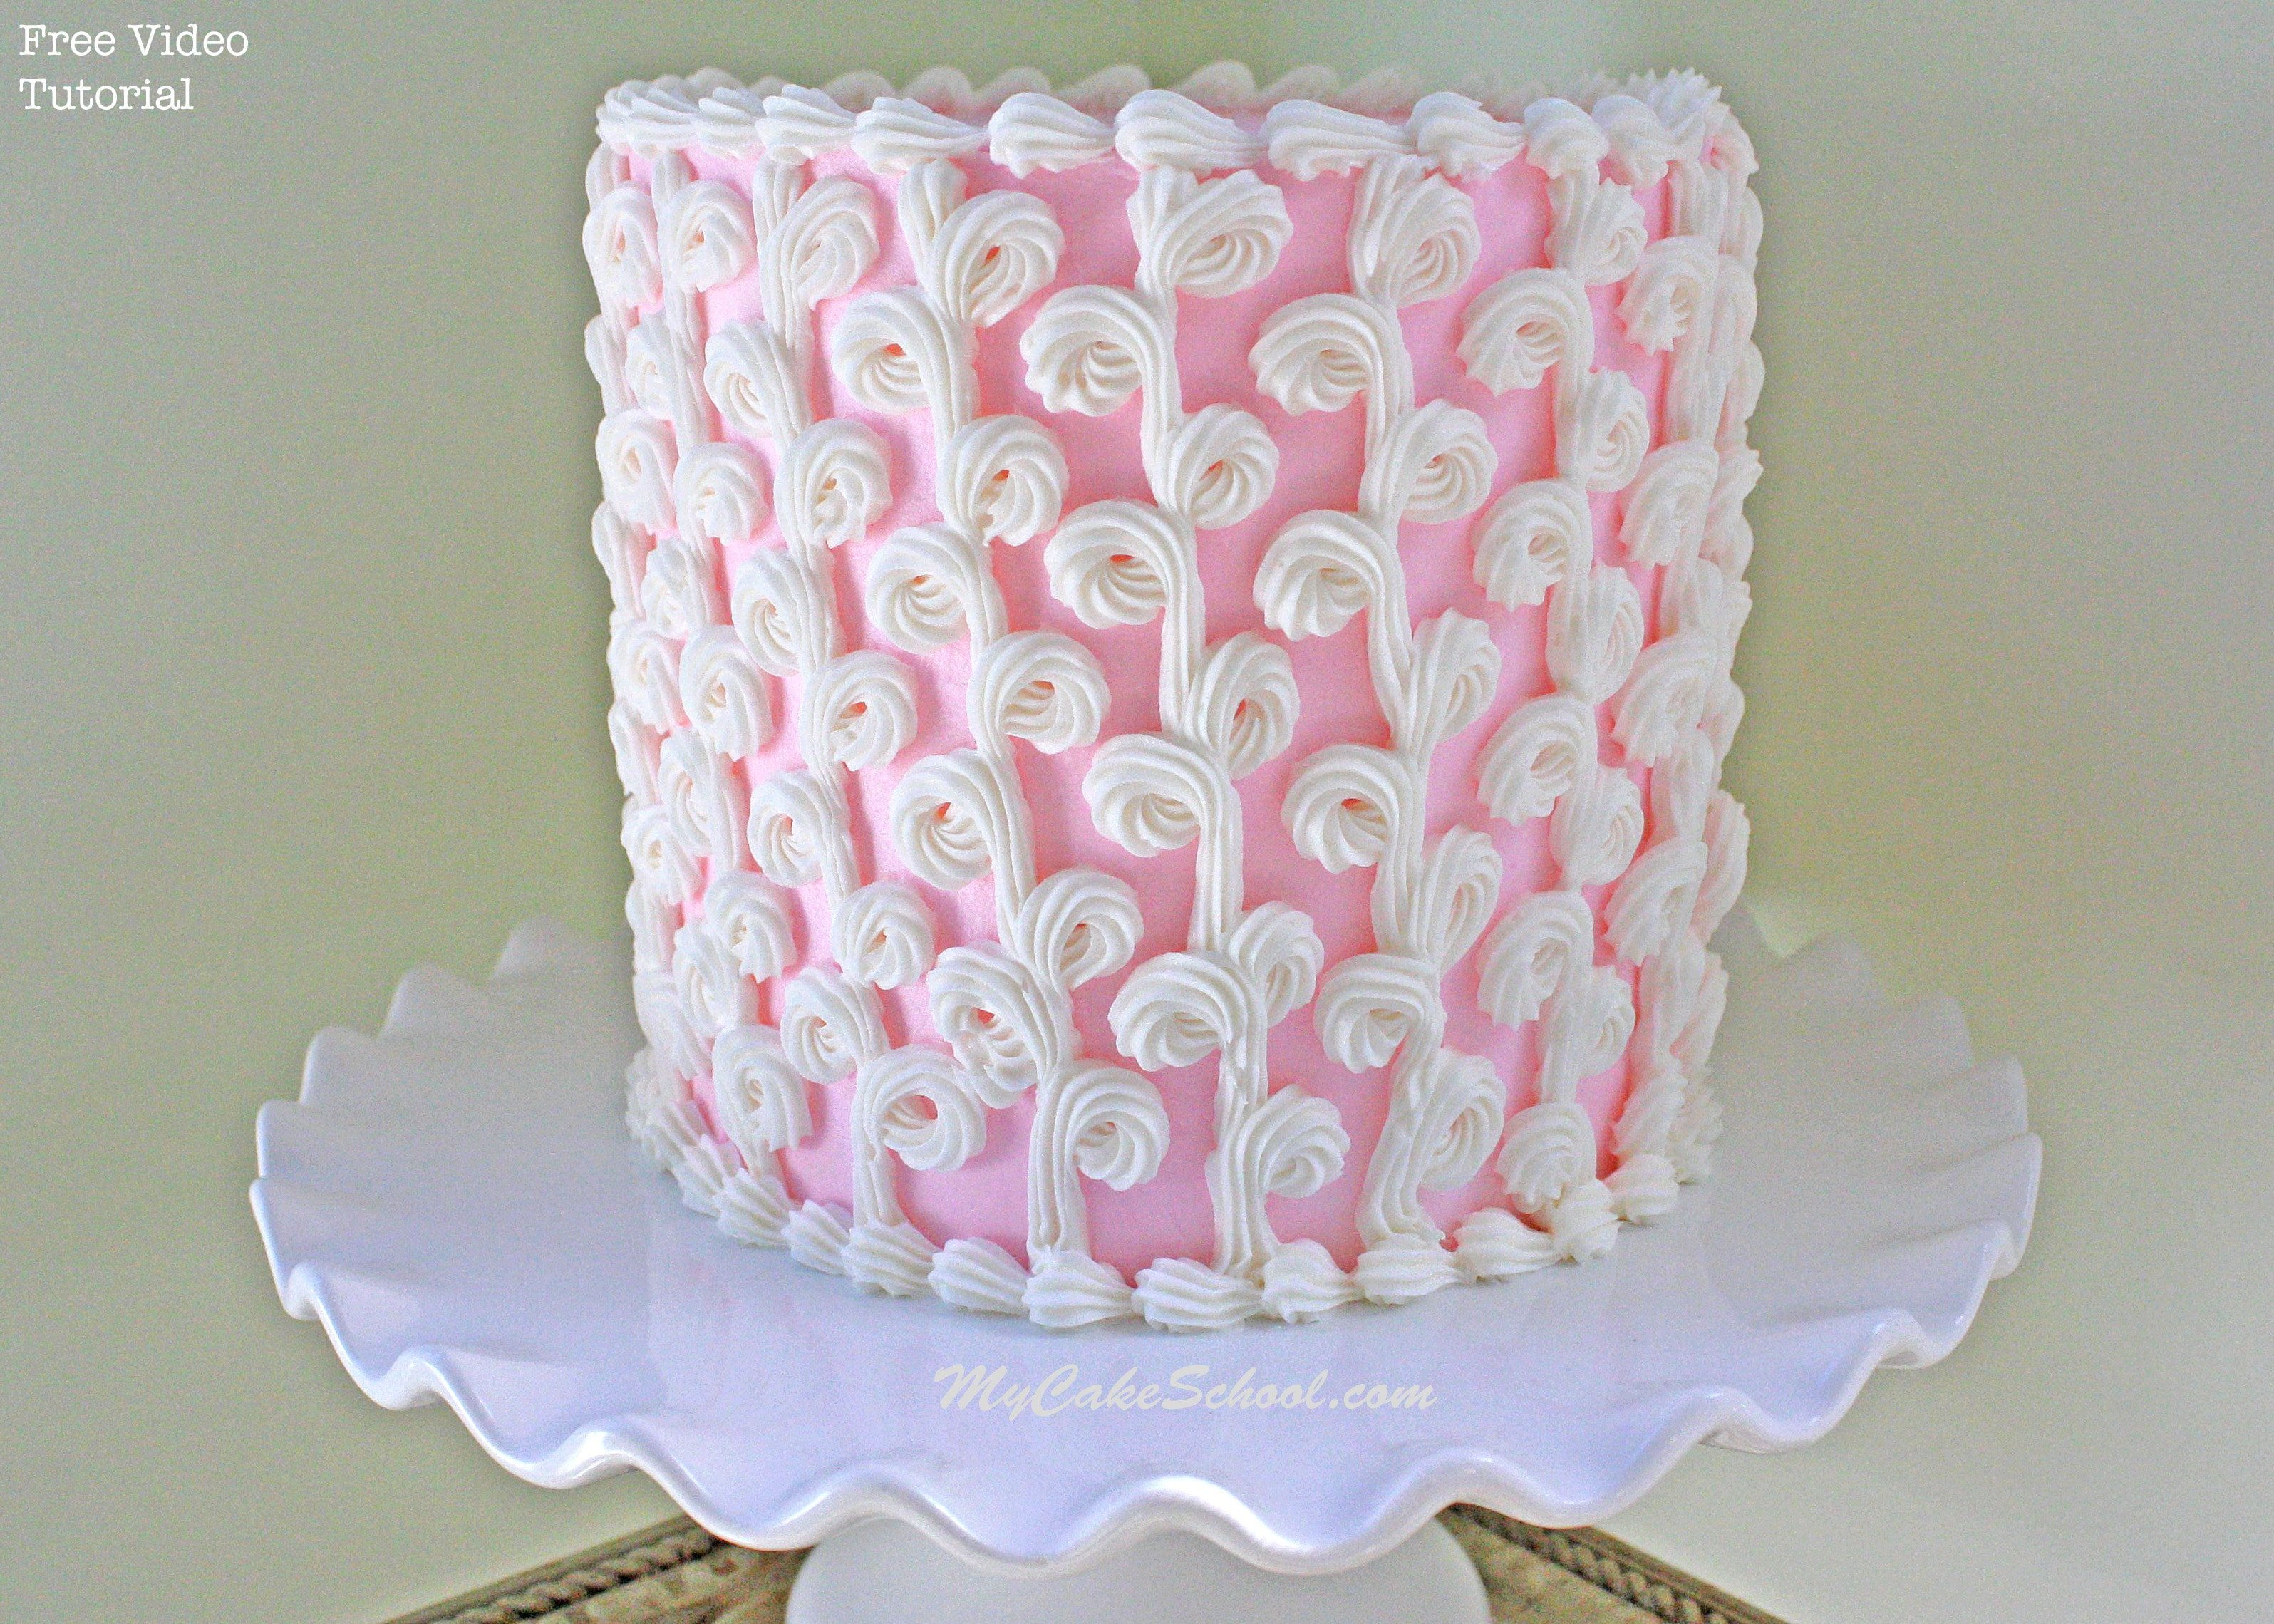 Easy And Elegant Loopy Buttercream Piping Free Cake Video